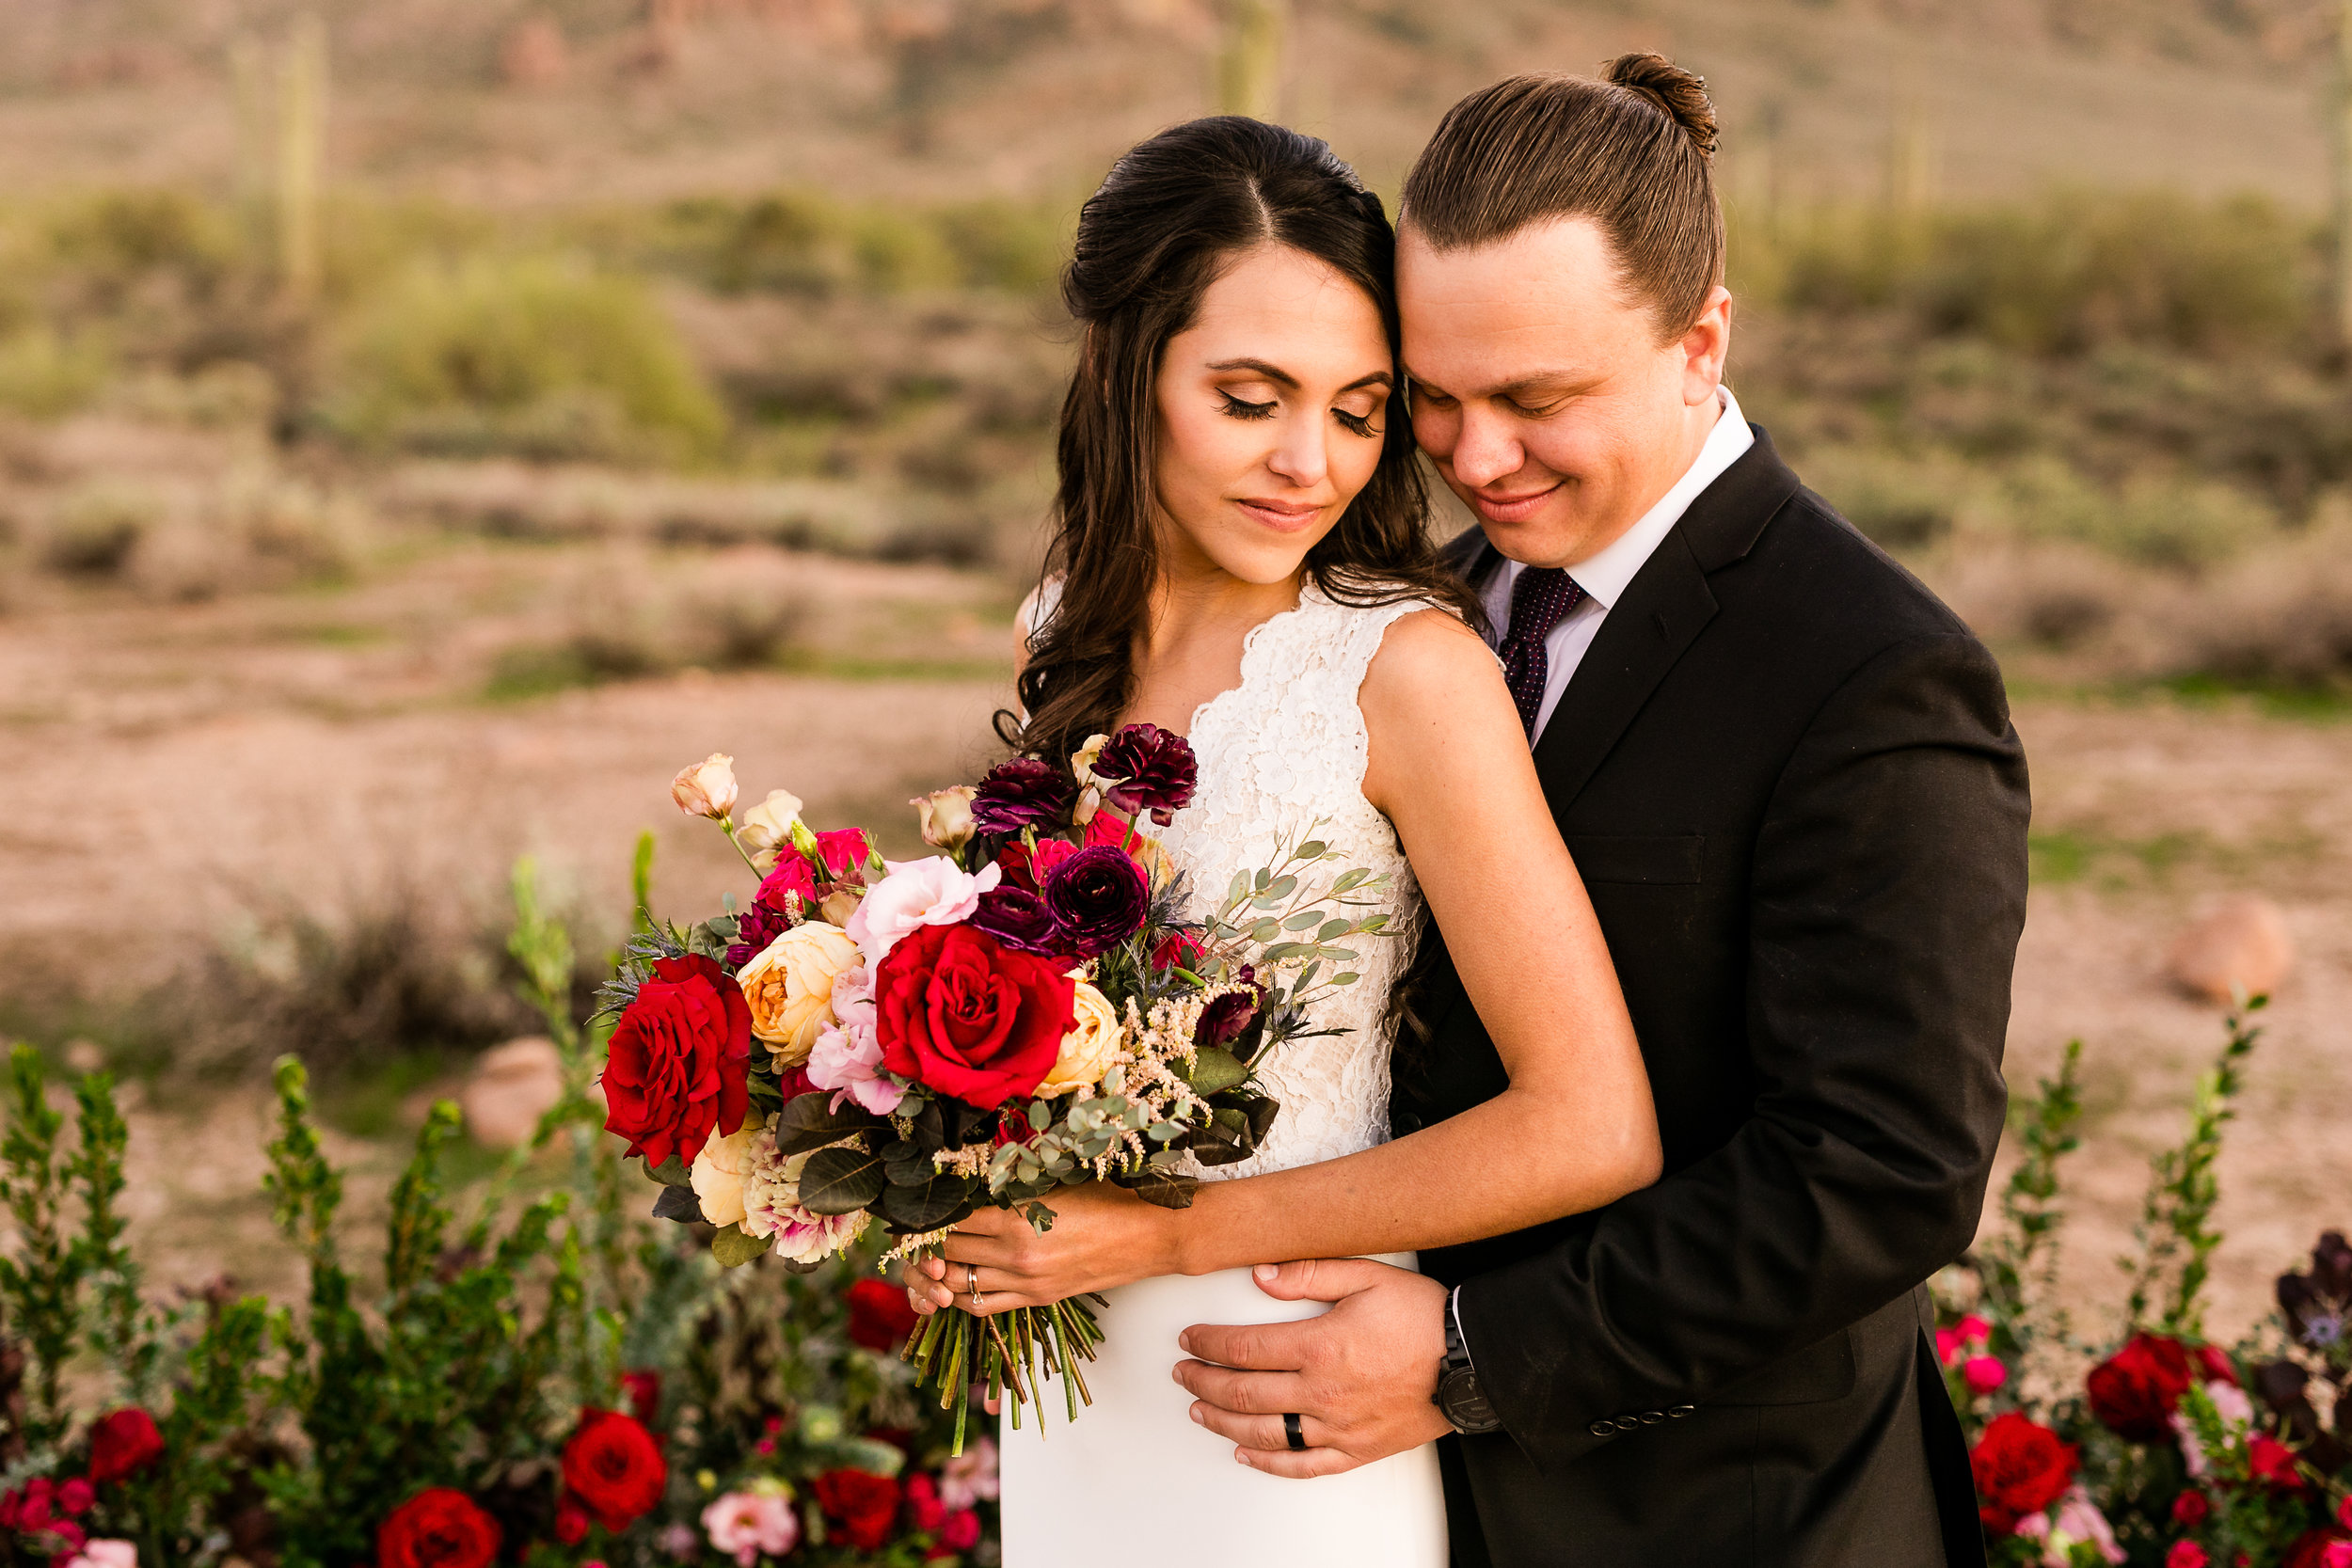 Superstition Mountain Wedding - Small Wedding Inspiration